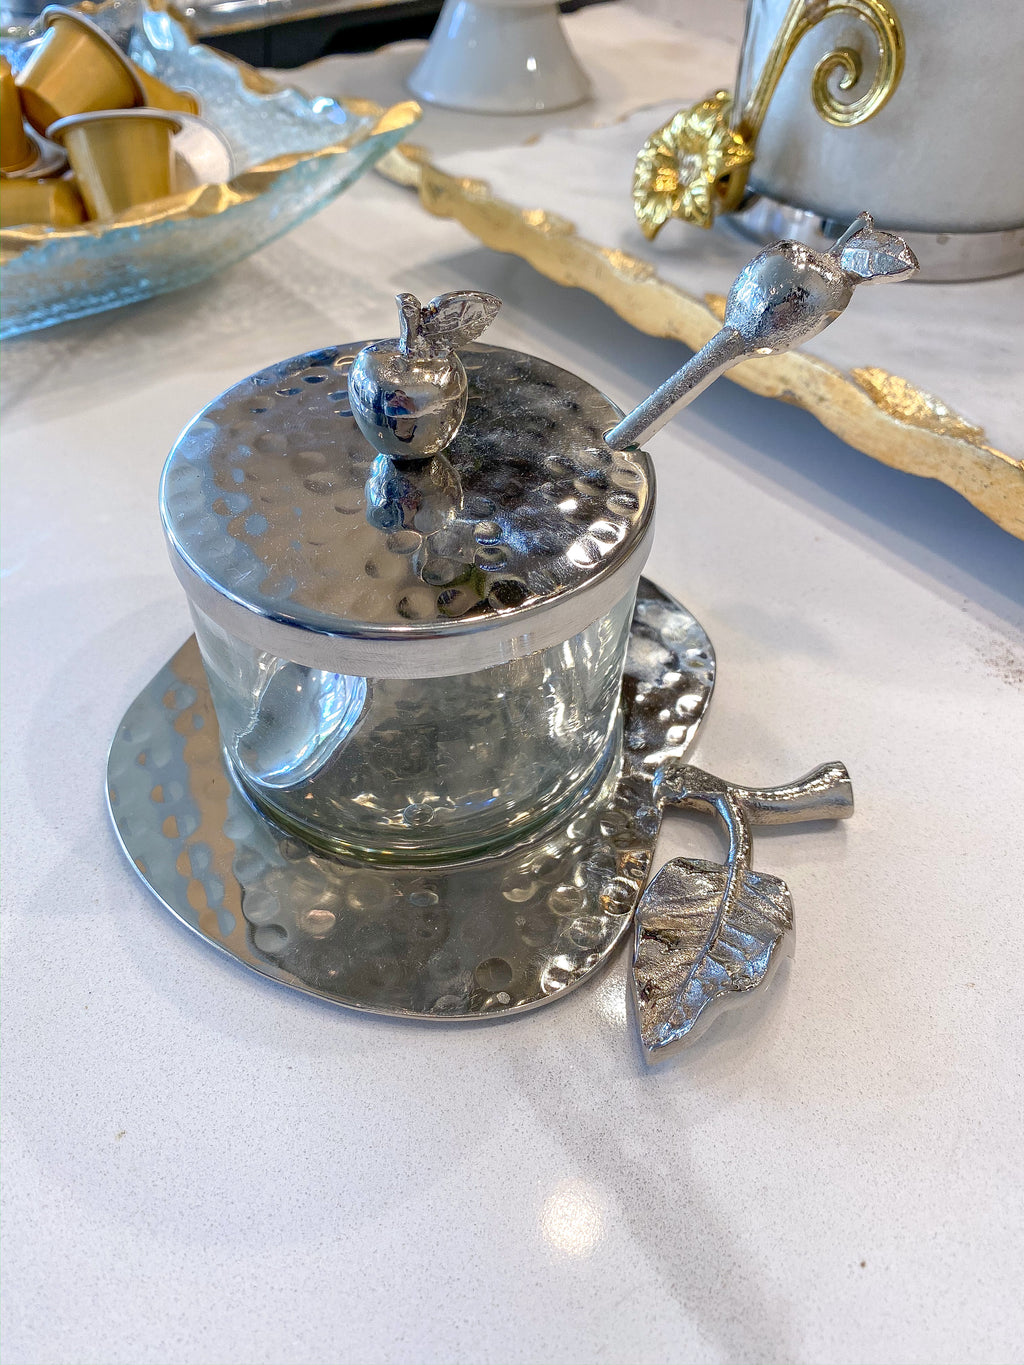 Glass Honey Dish with Silver Apple Tray, Lid, and Spoon-Inspire Me! Home Decor